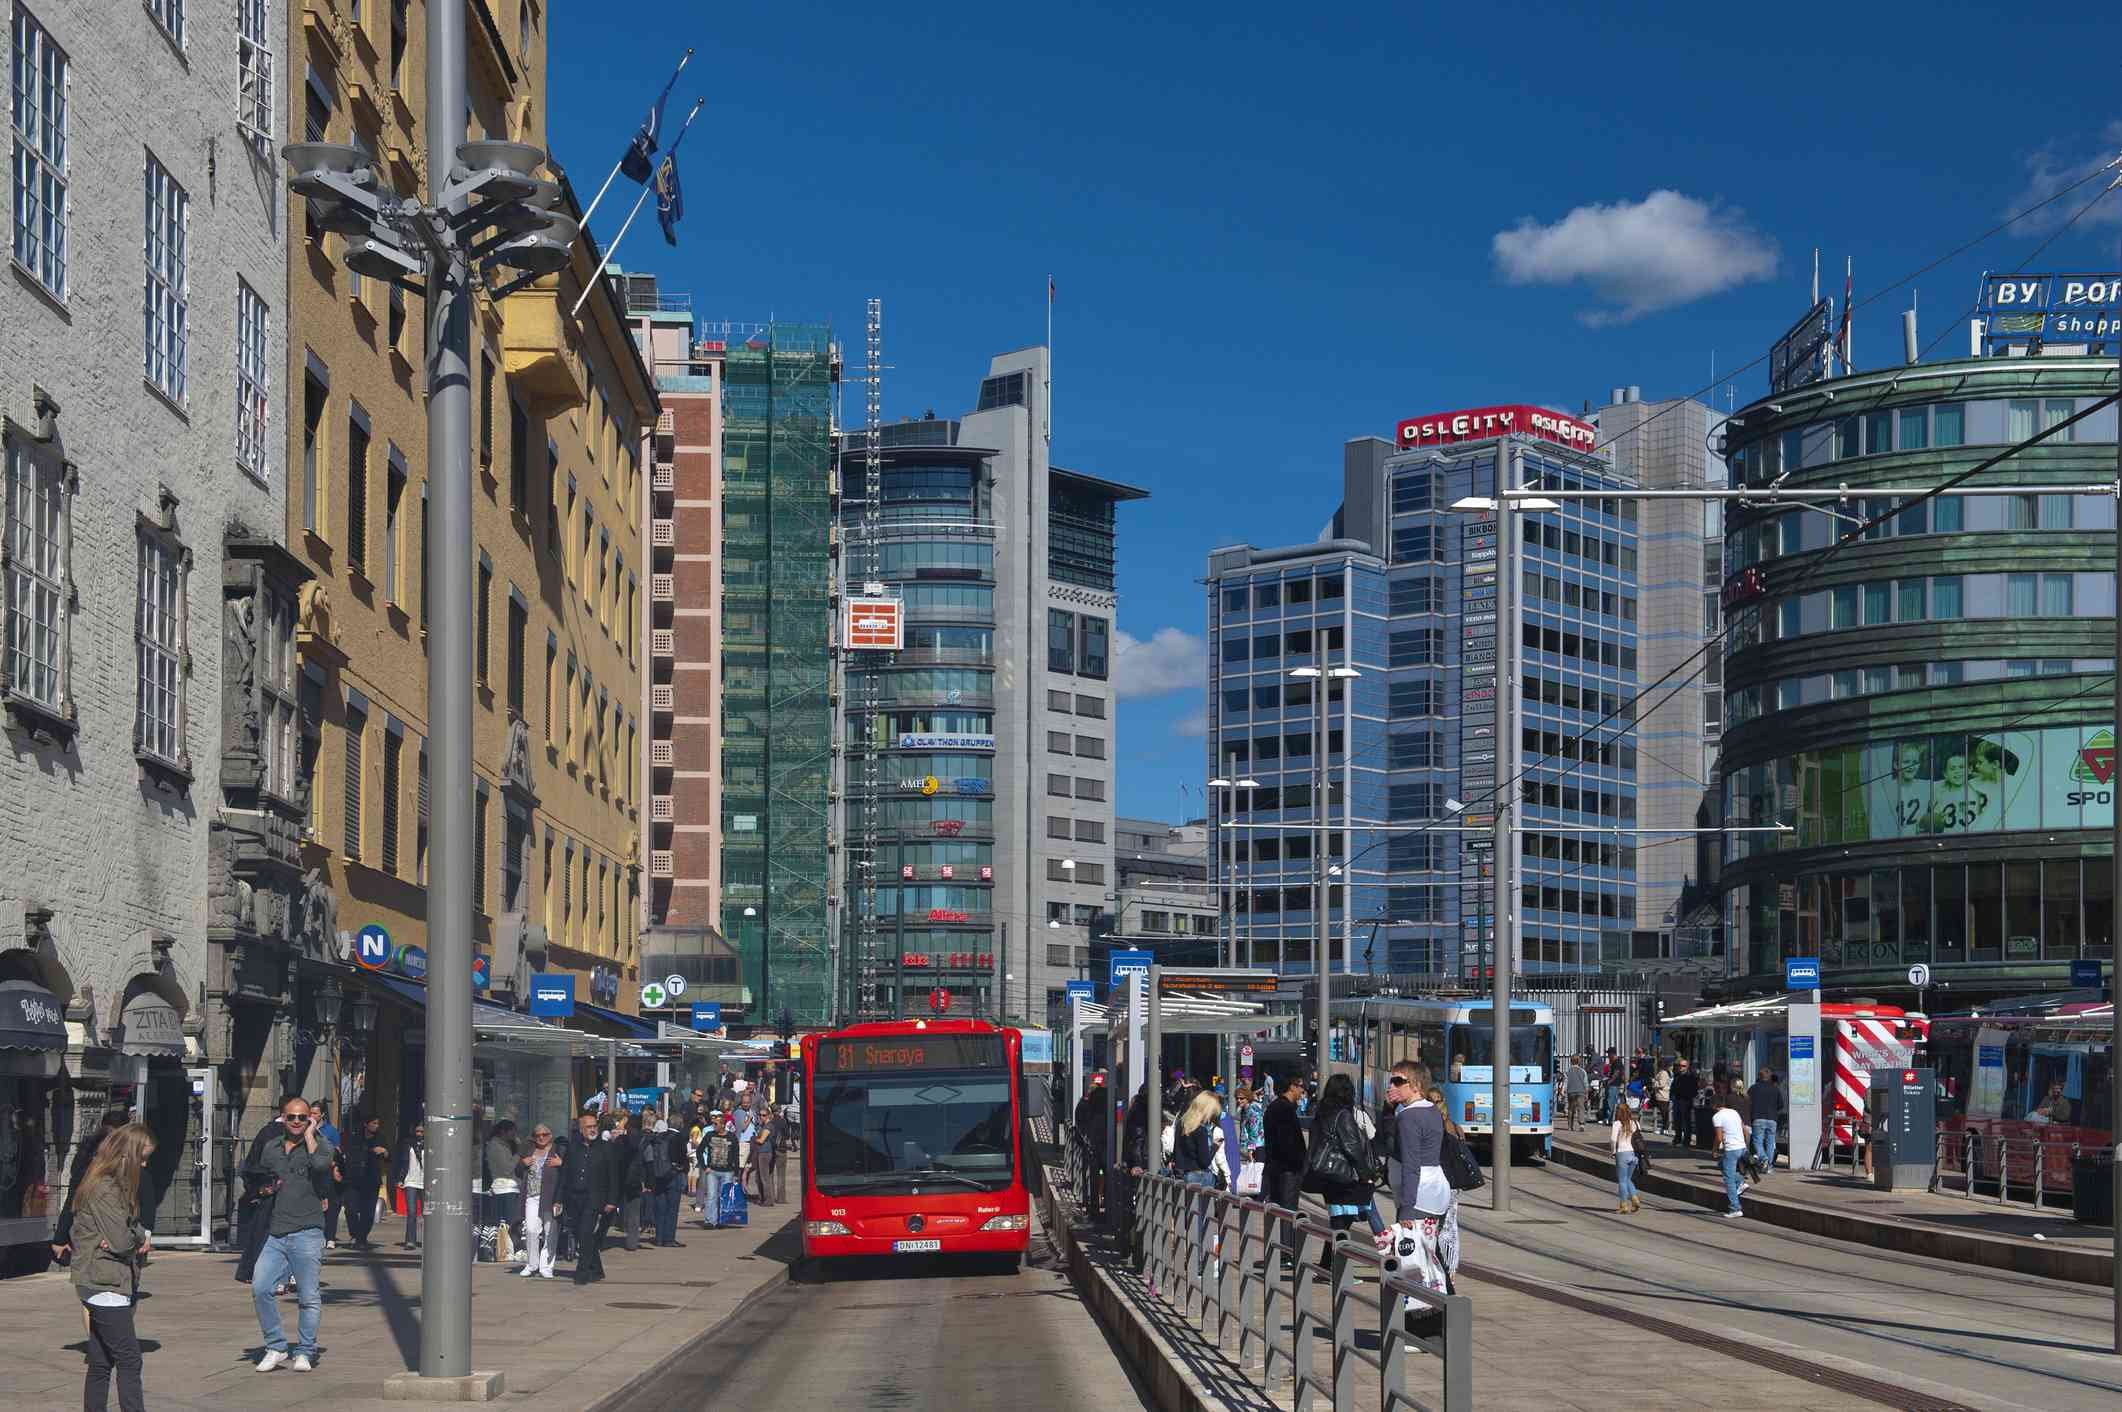 Tall buildings of downtown Oslo, Norway with people walking on clean sidewalks with a red bus in the center of the photo on a sunny day with a bright blue sky with few clouds